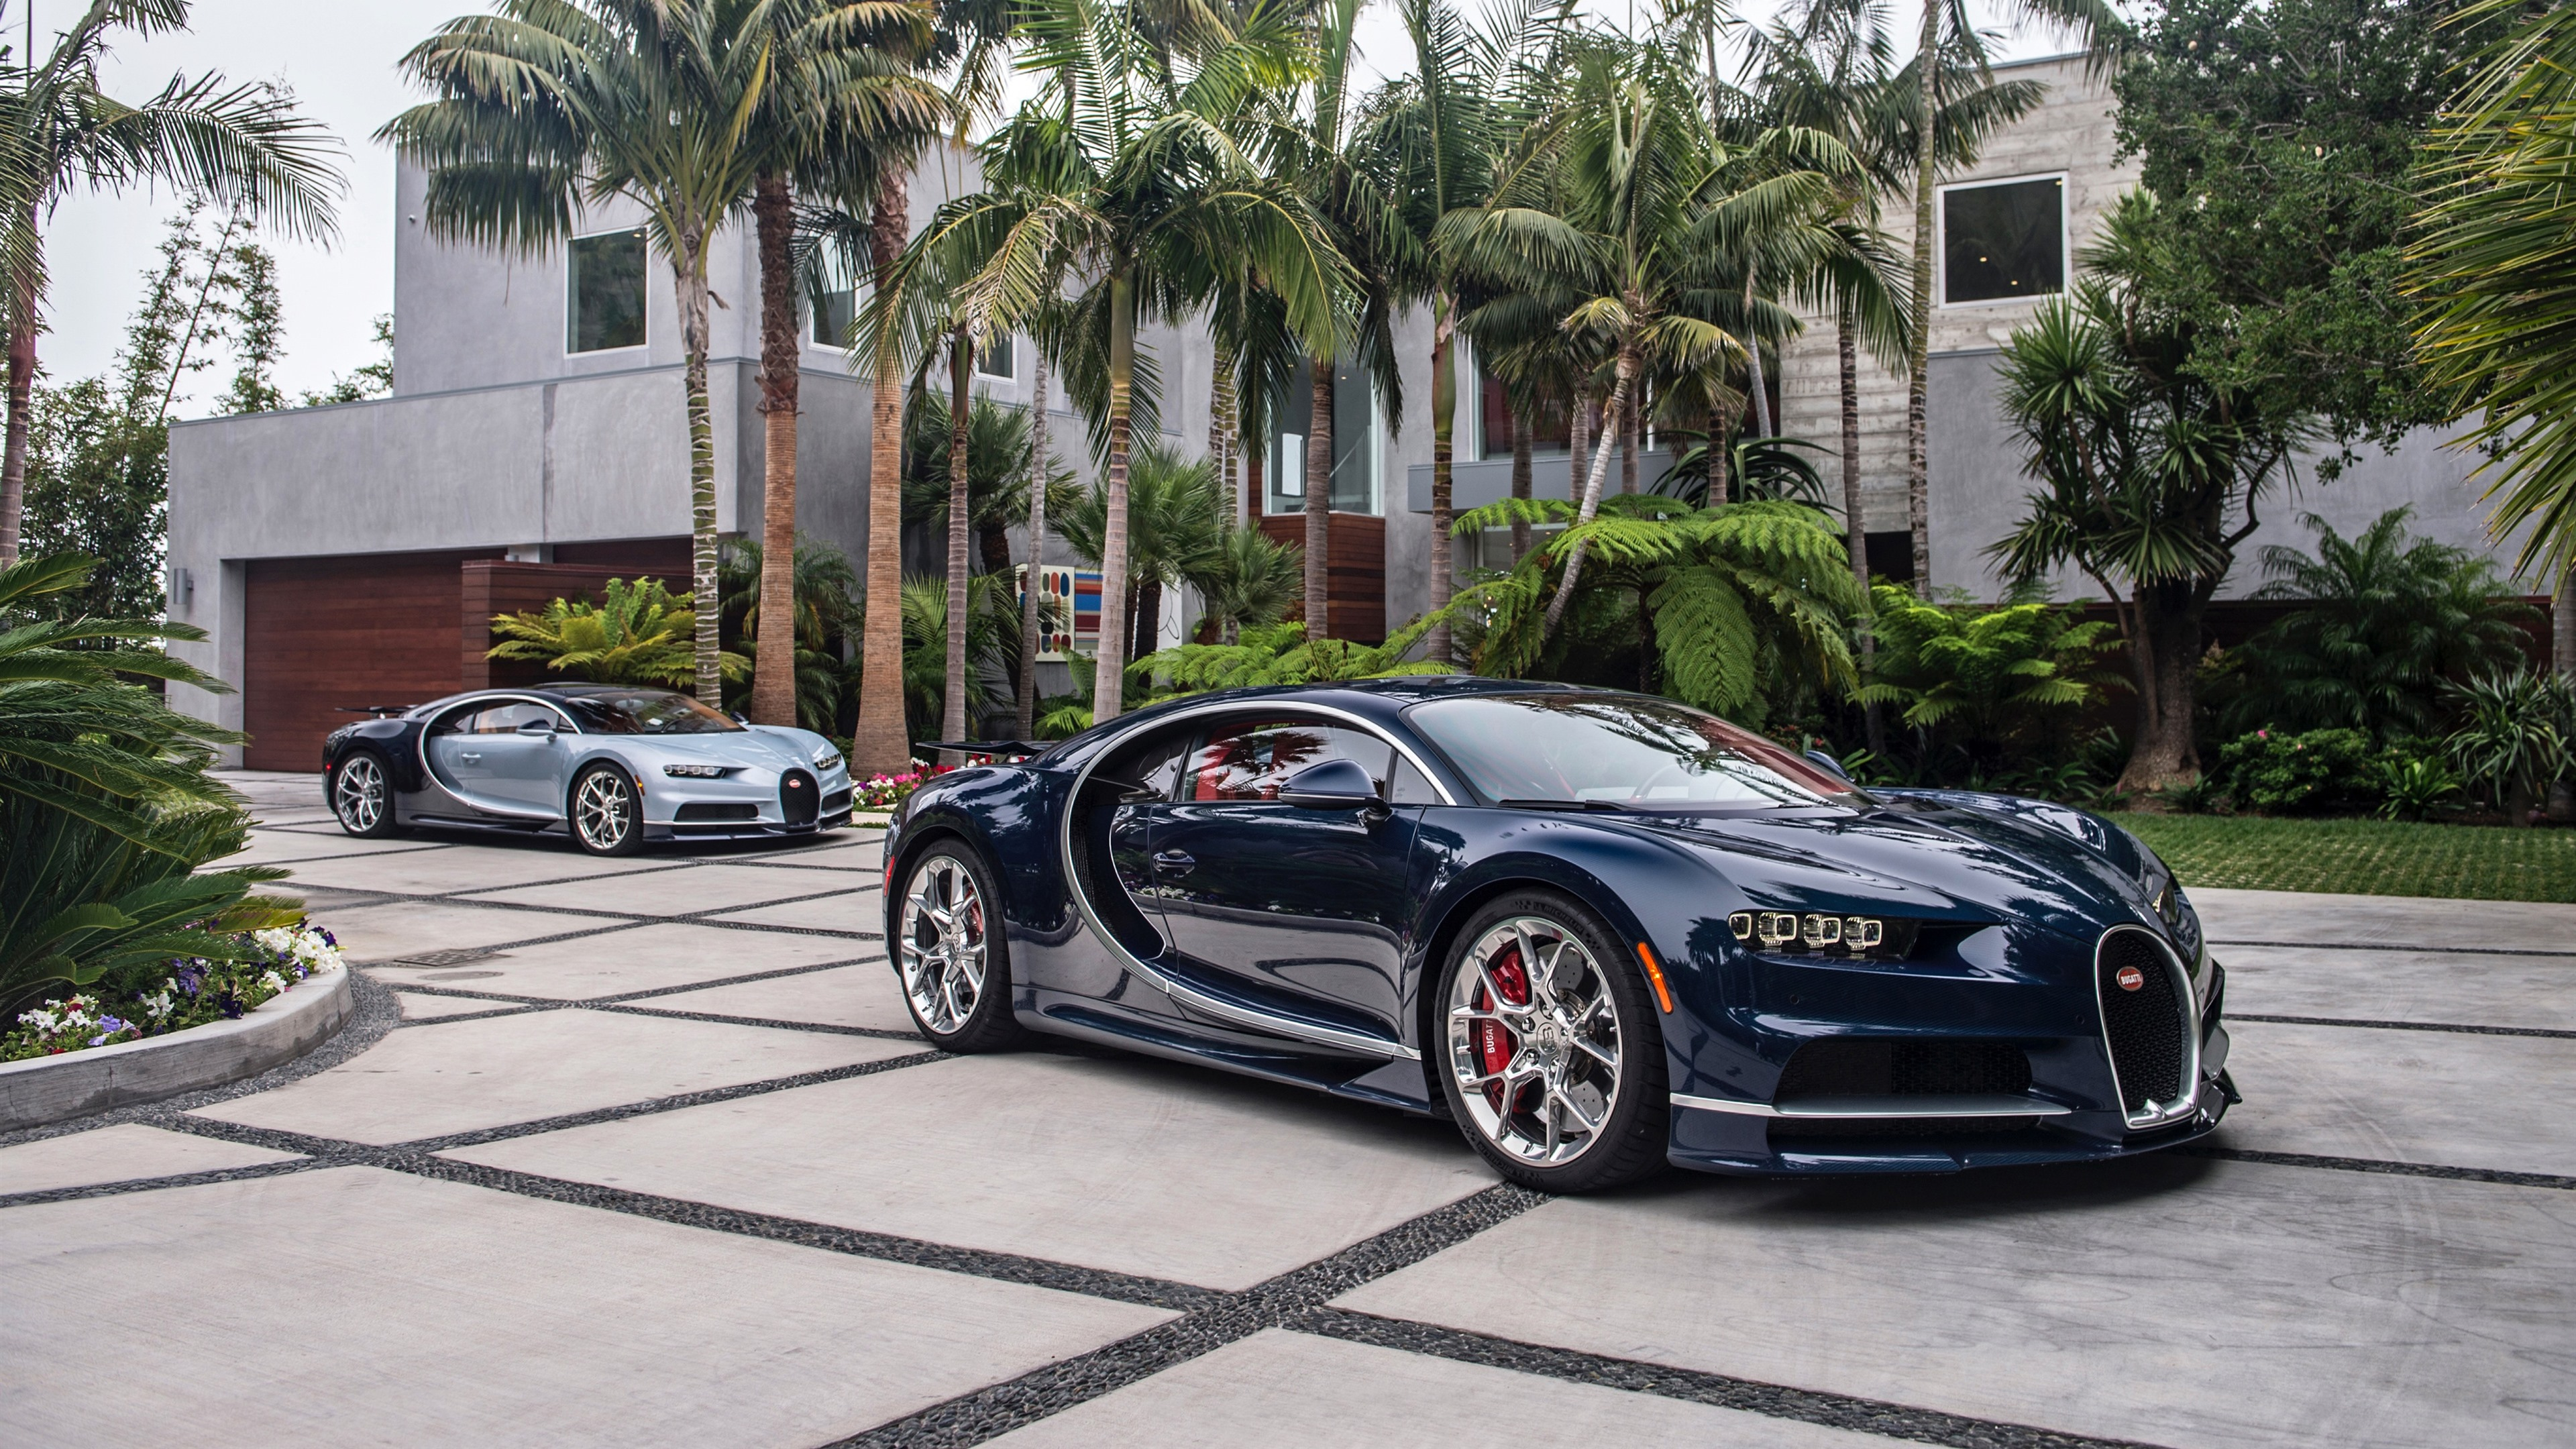 Wallpaper Bugatti Blue Supercar Palm Trees 3840x2160 Uhd 4k Picture Image